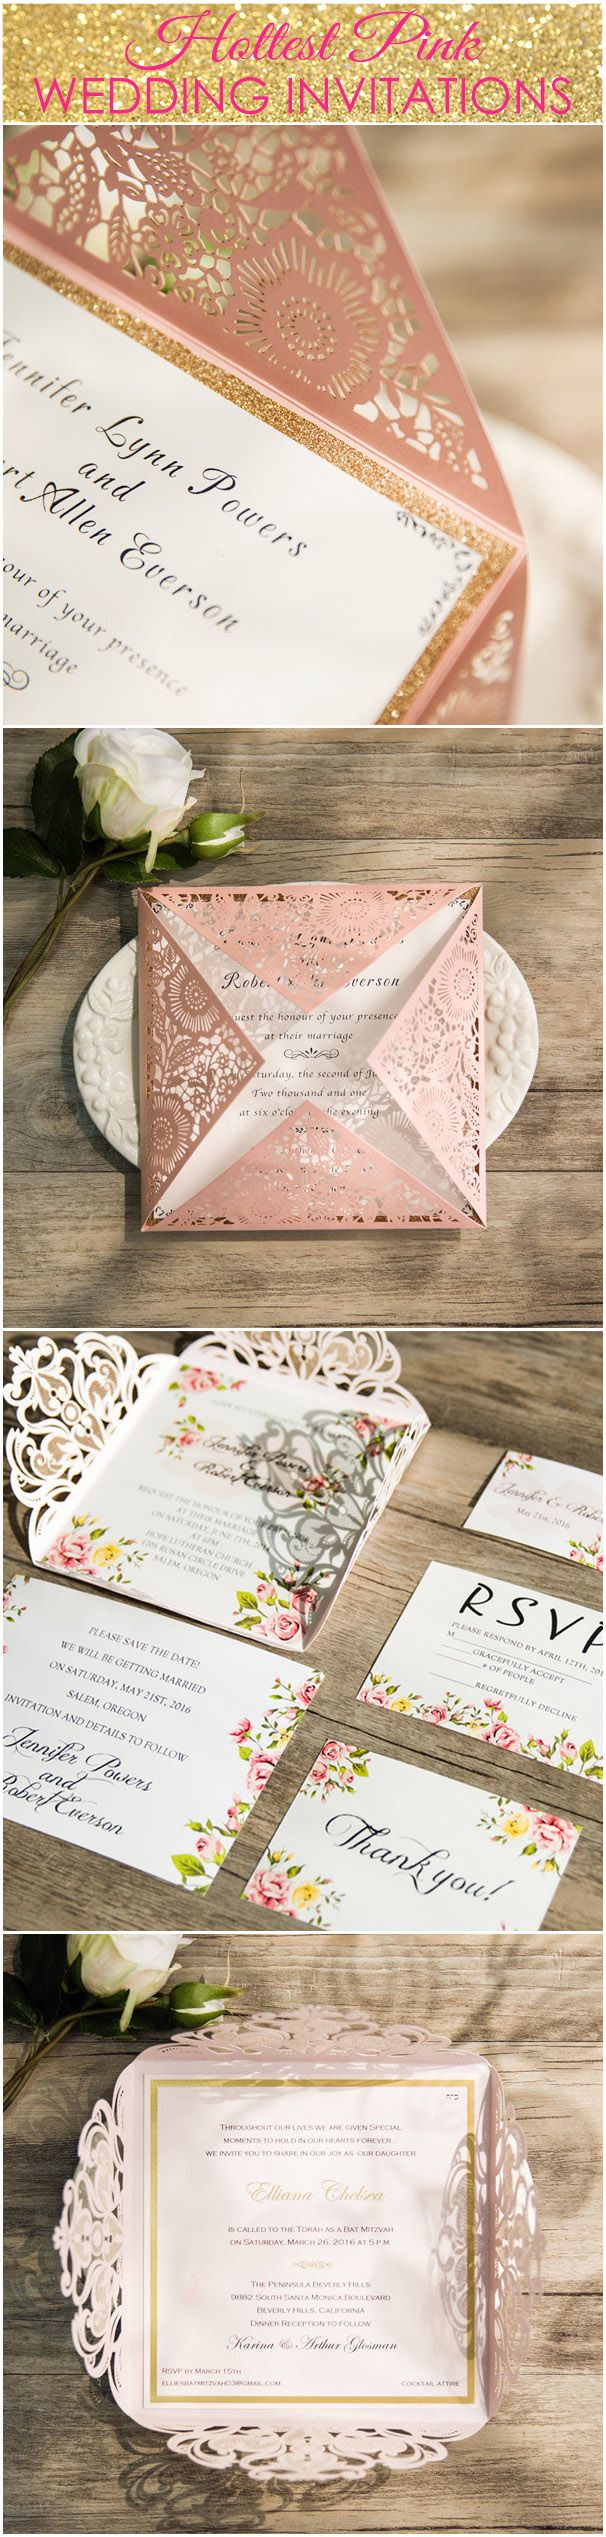 time wedding invitatiowording%0A shades of pink wedding invitations  laser cut wedding invitation